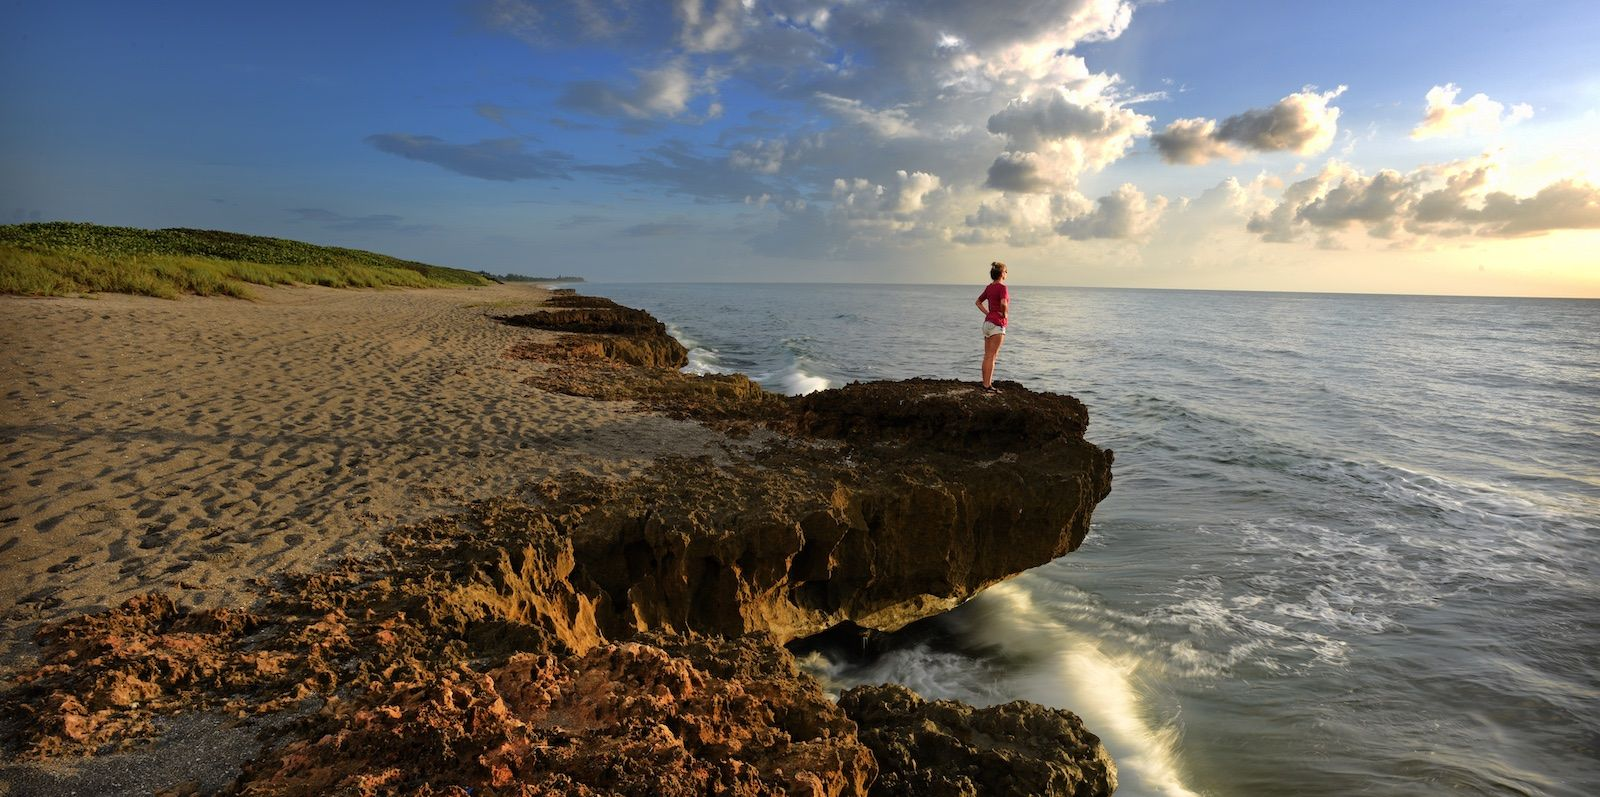 Florida outdoors: 3 travel guides